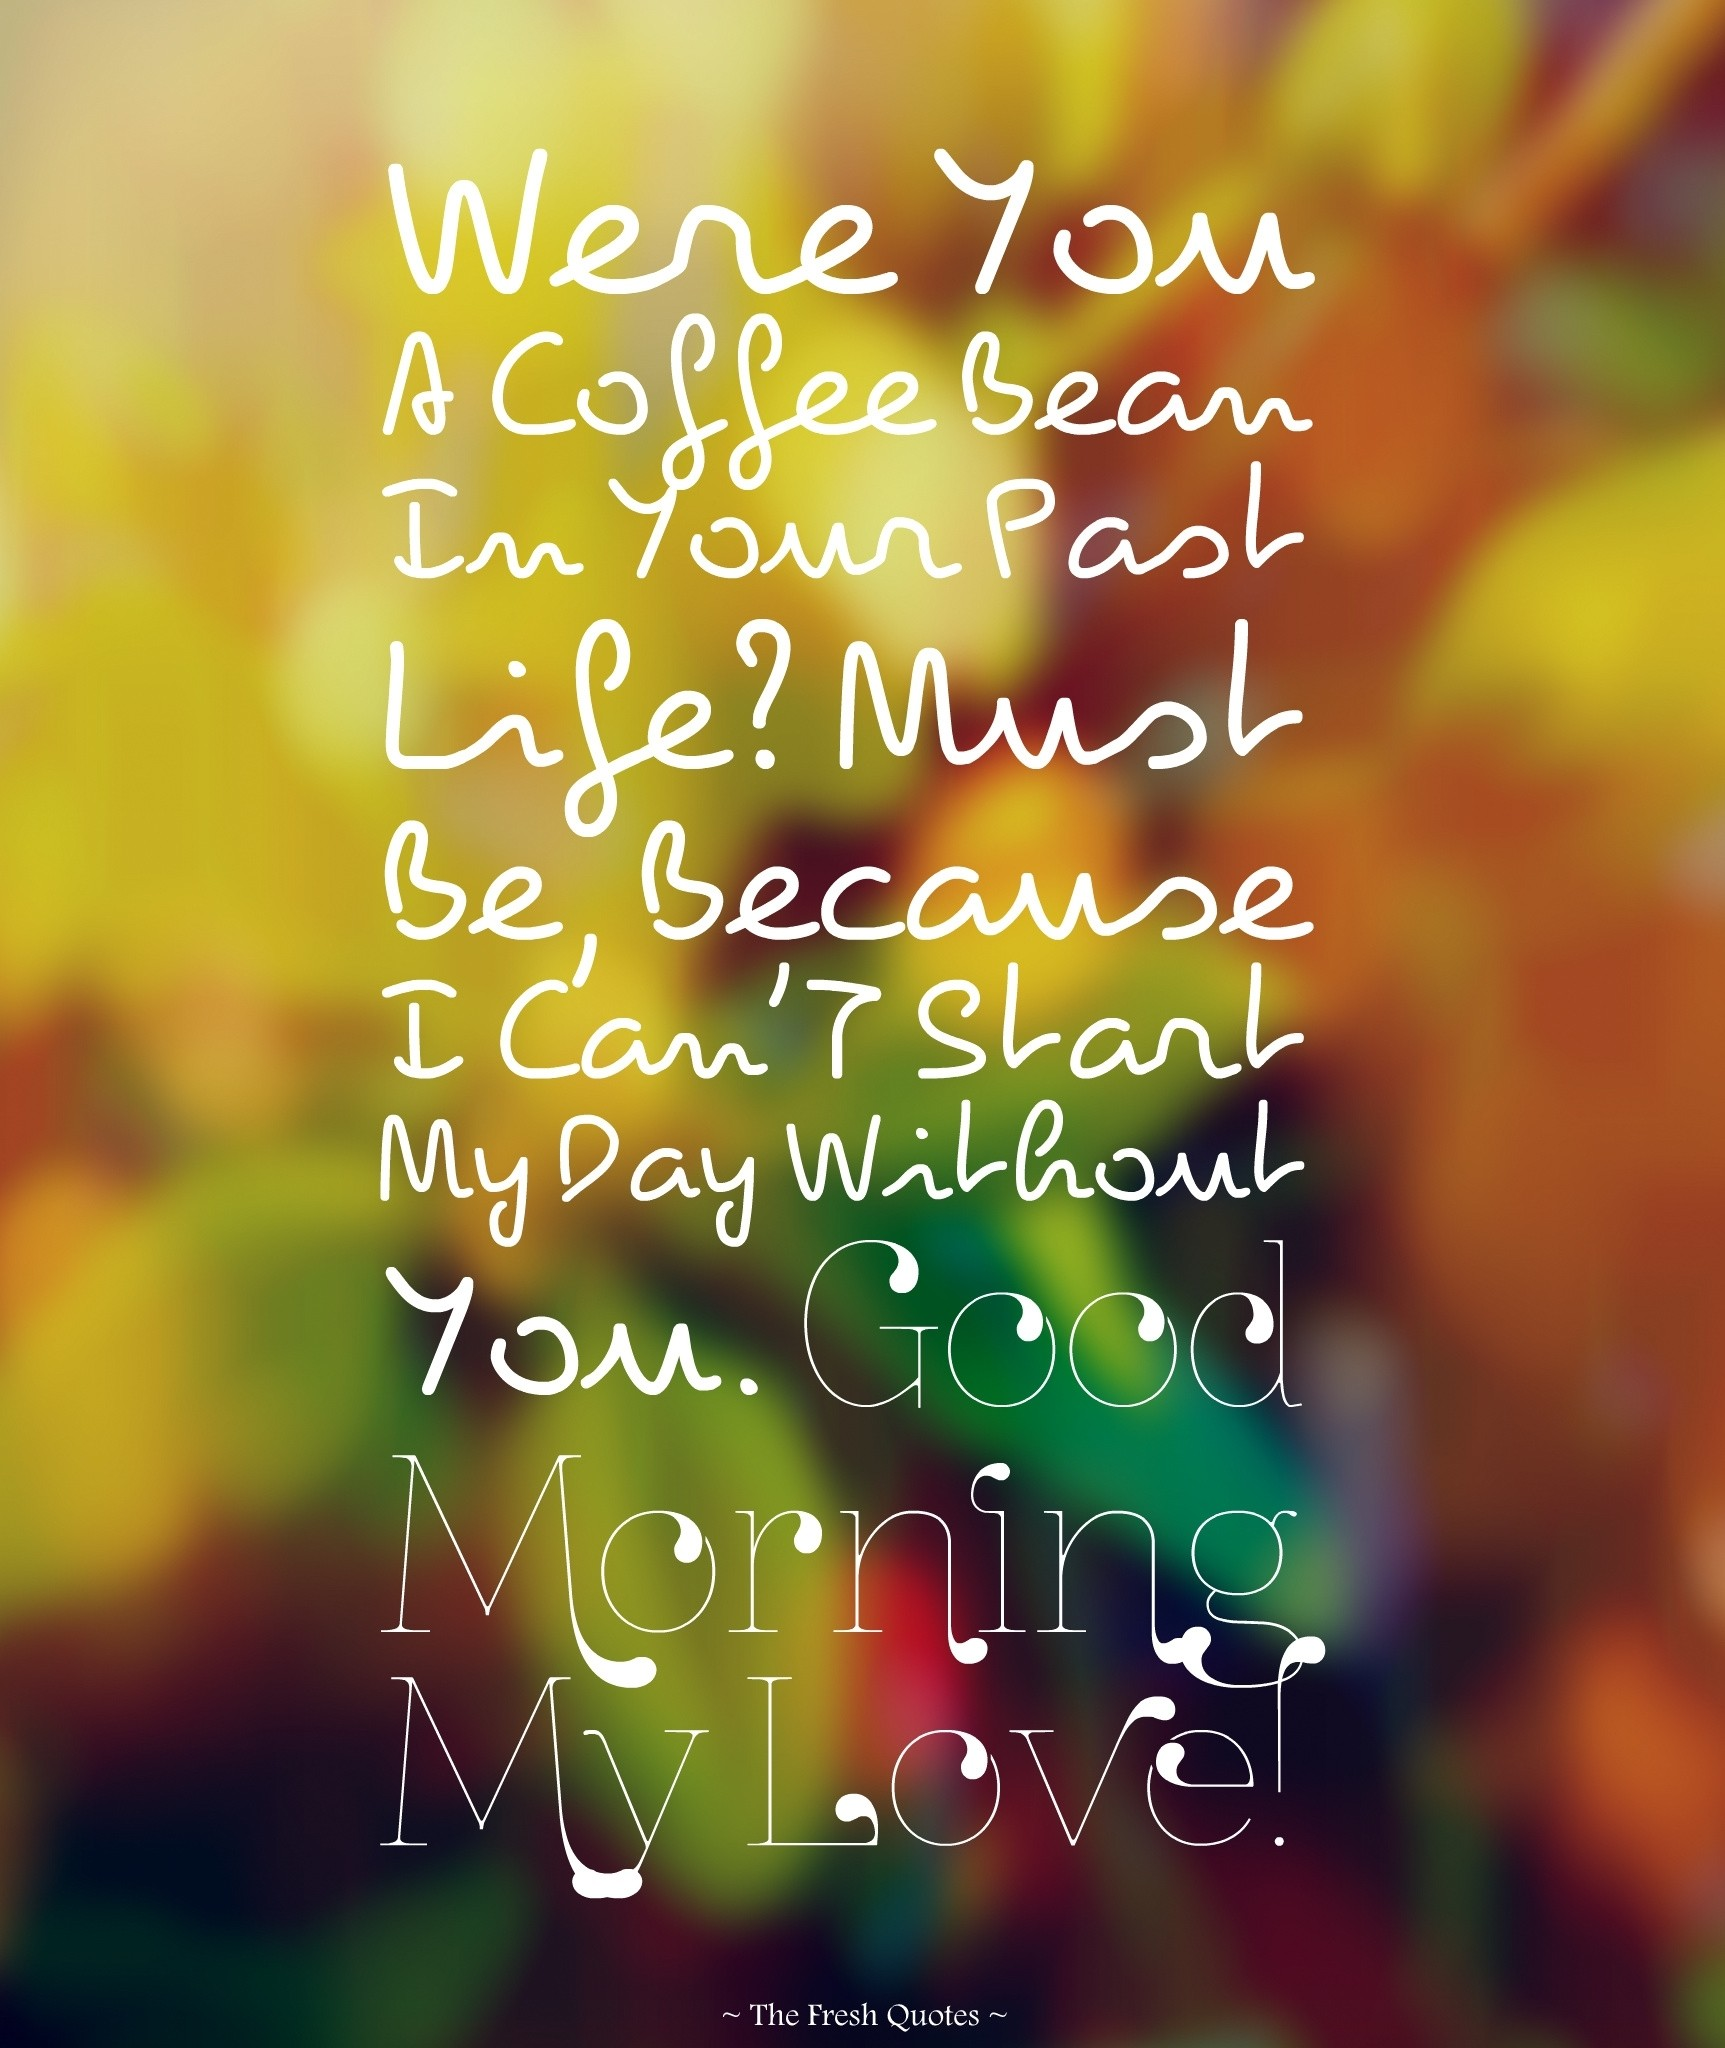 30 Cool Collection Of Love Quotes: Cute Love Quotes Wallpapers (58+ Images